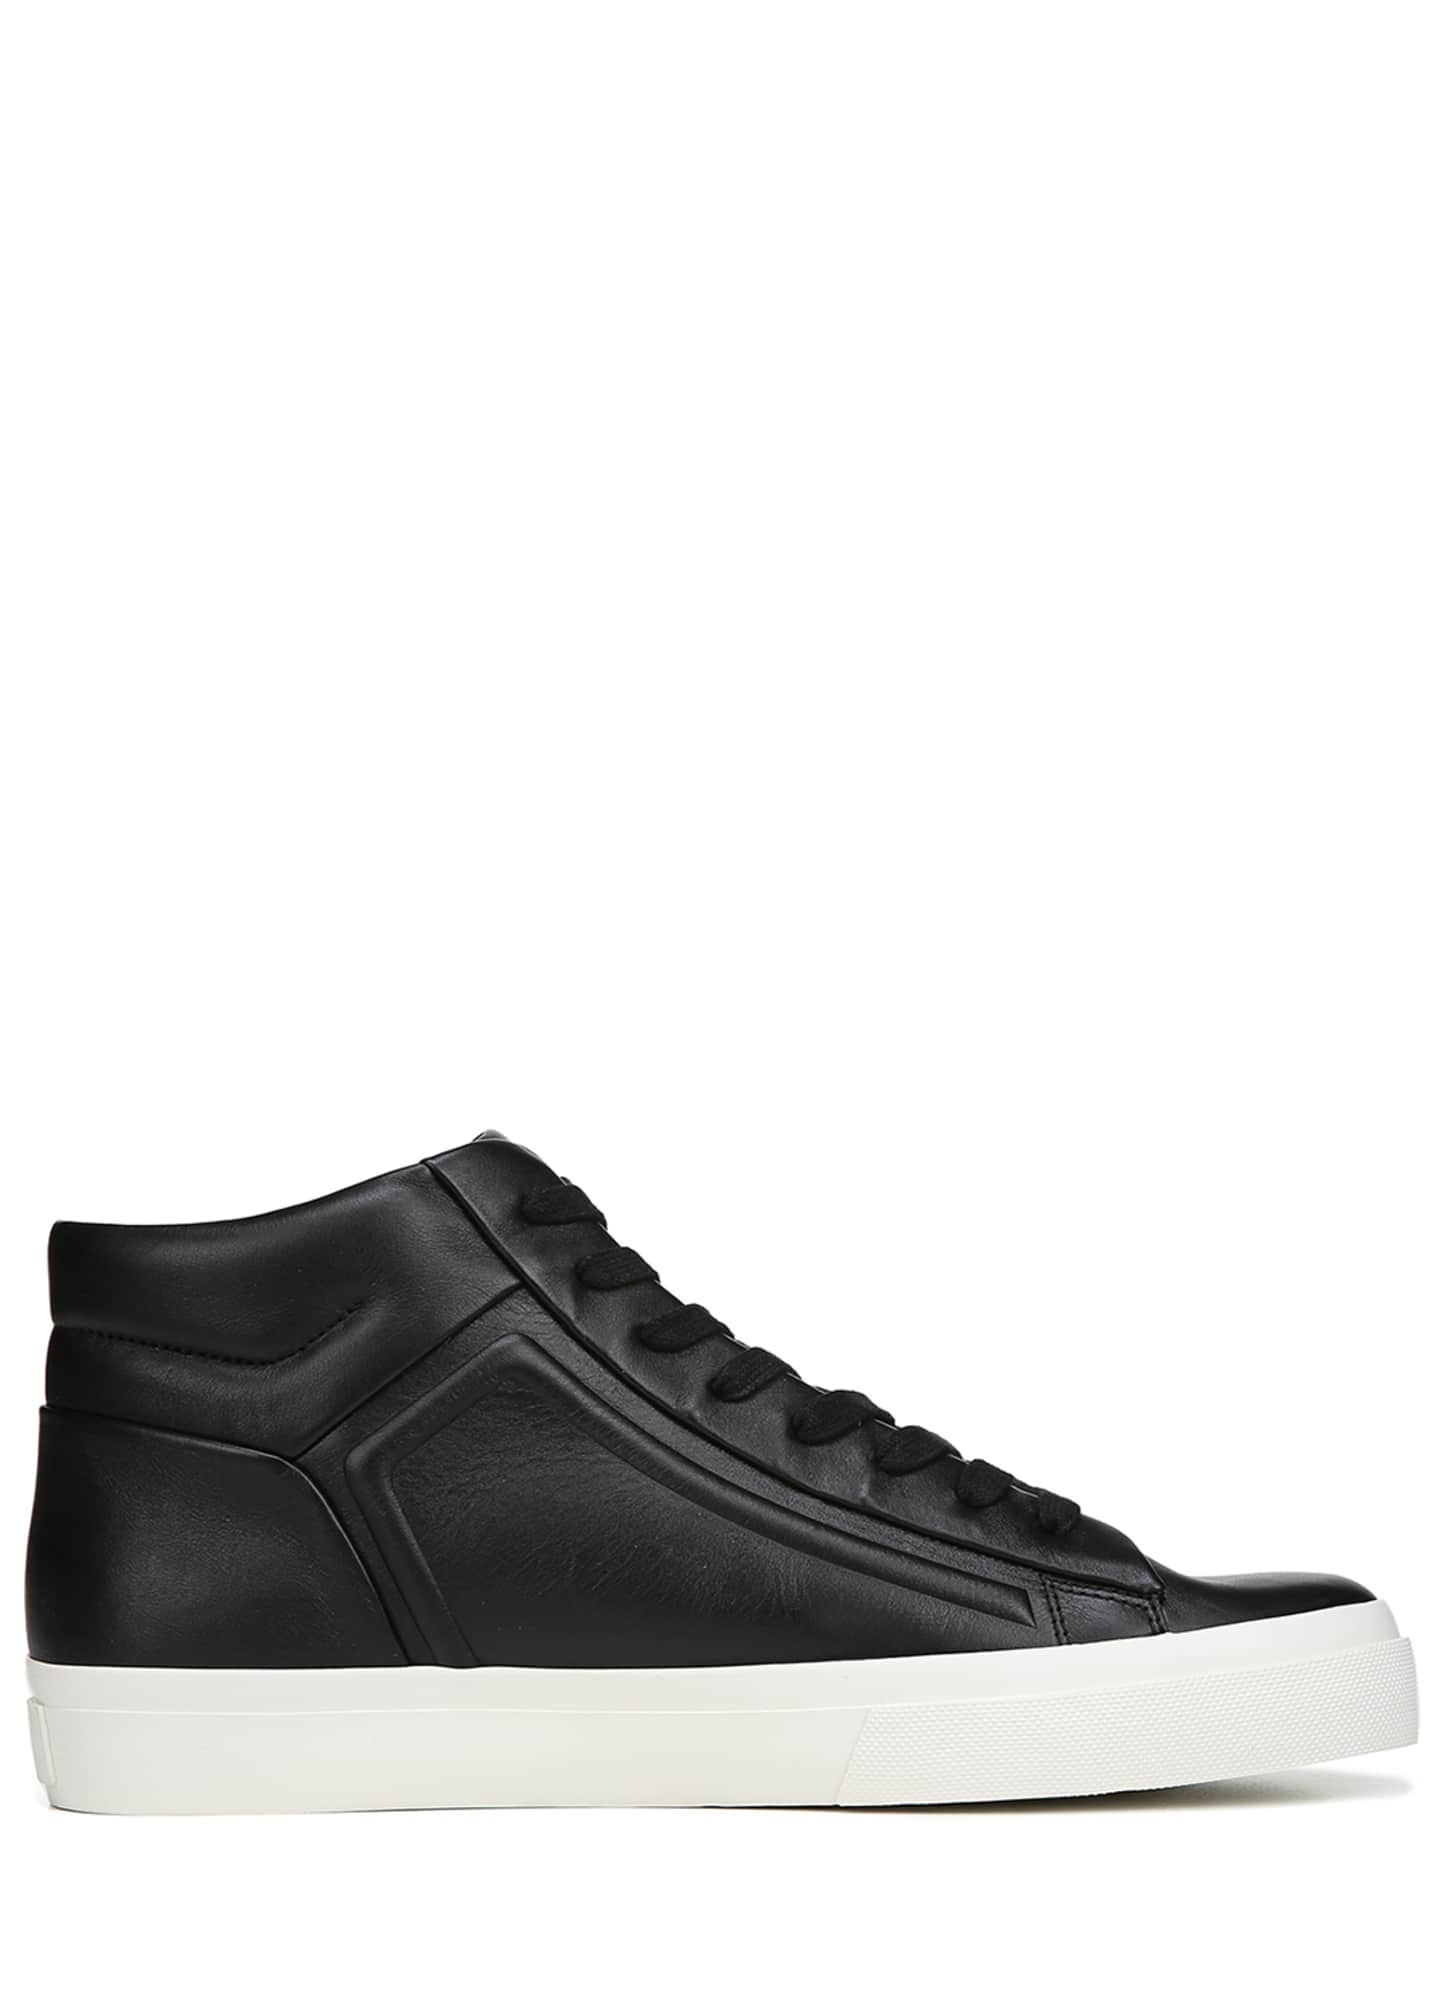 Image 2 of 5: Men's Fynn Glove Leather Low-Top Sneakers